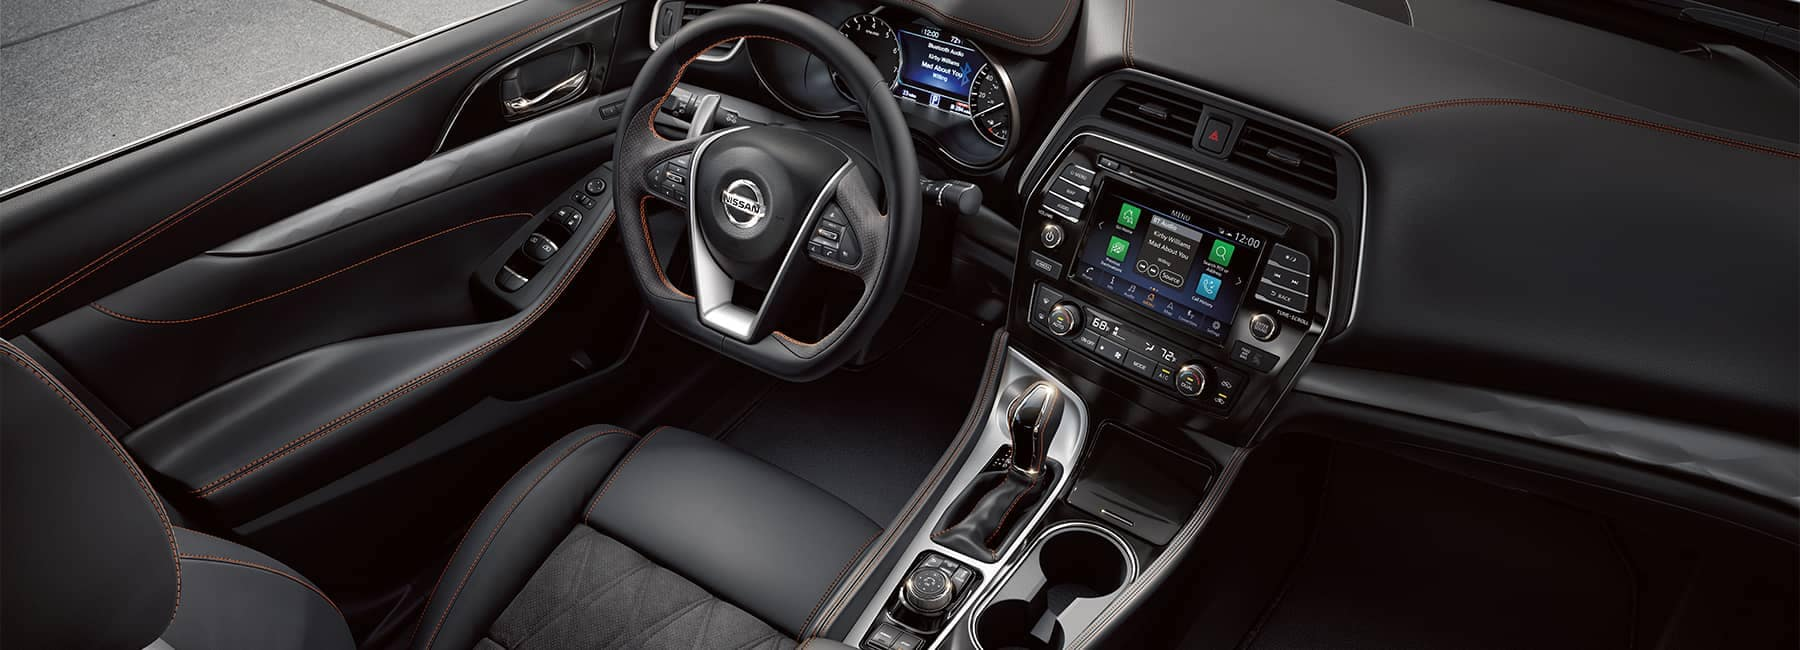 The black leather driver_s seat and dashboard of a 2021 Nissan Maxima